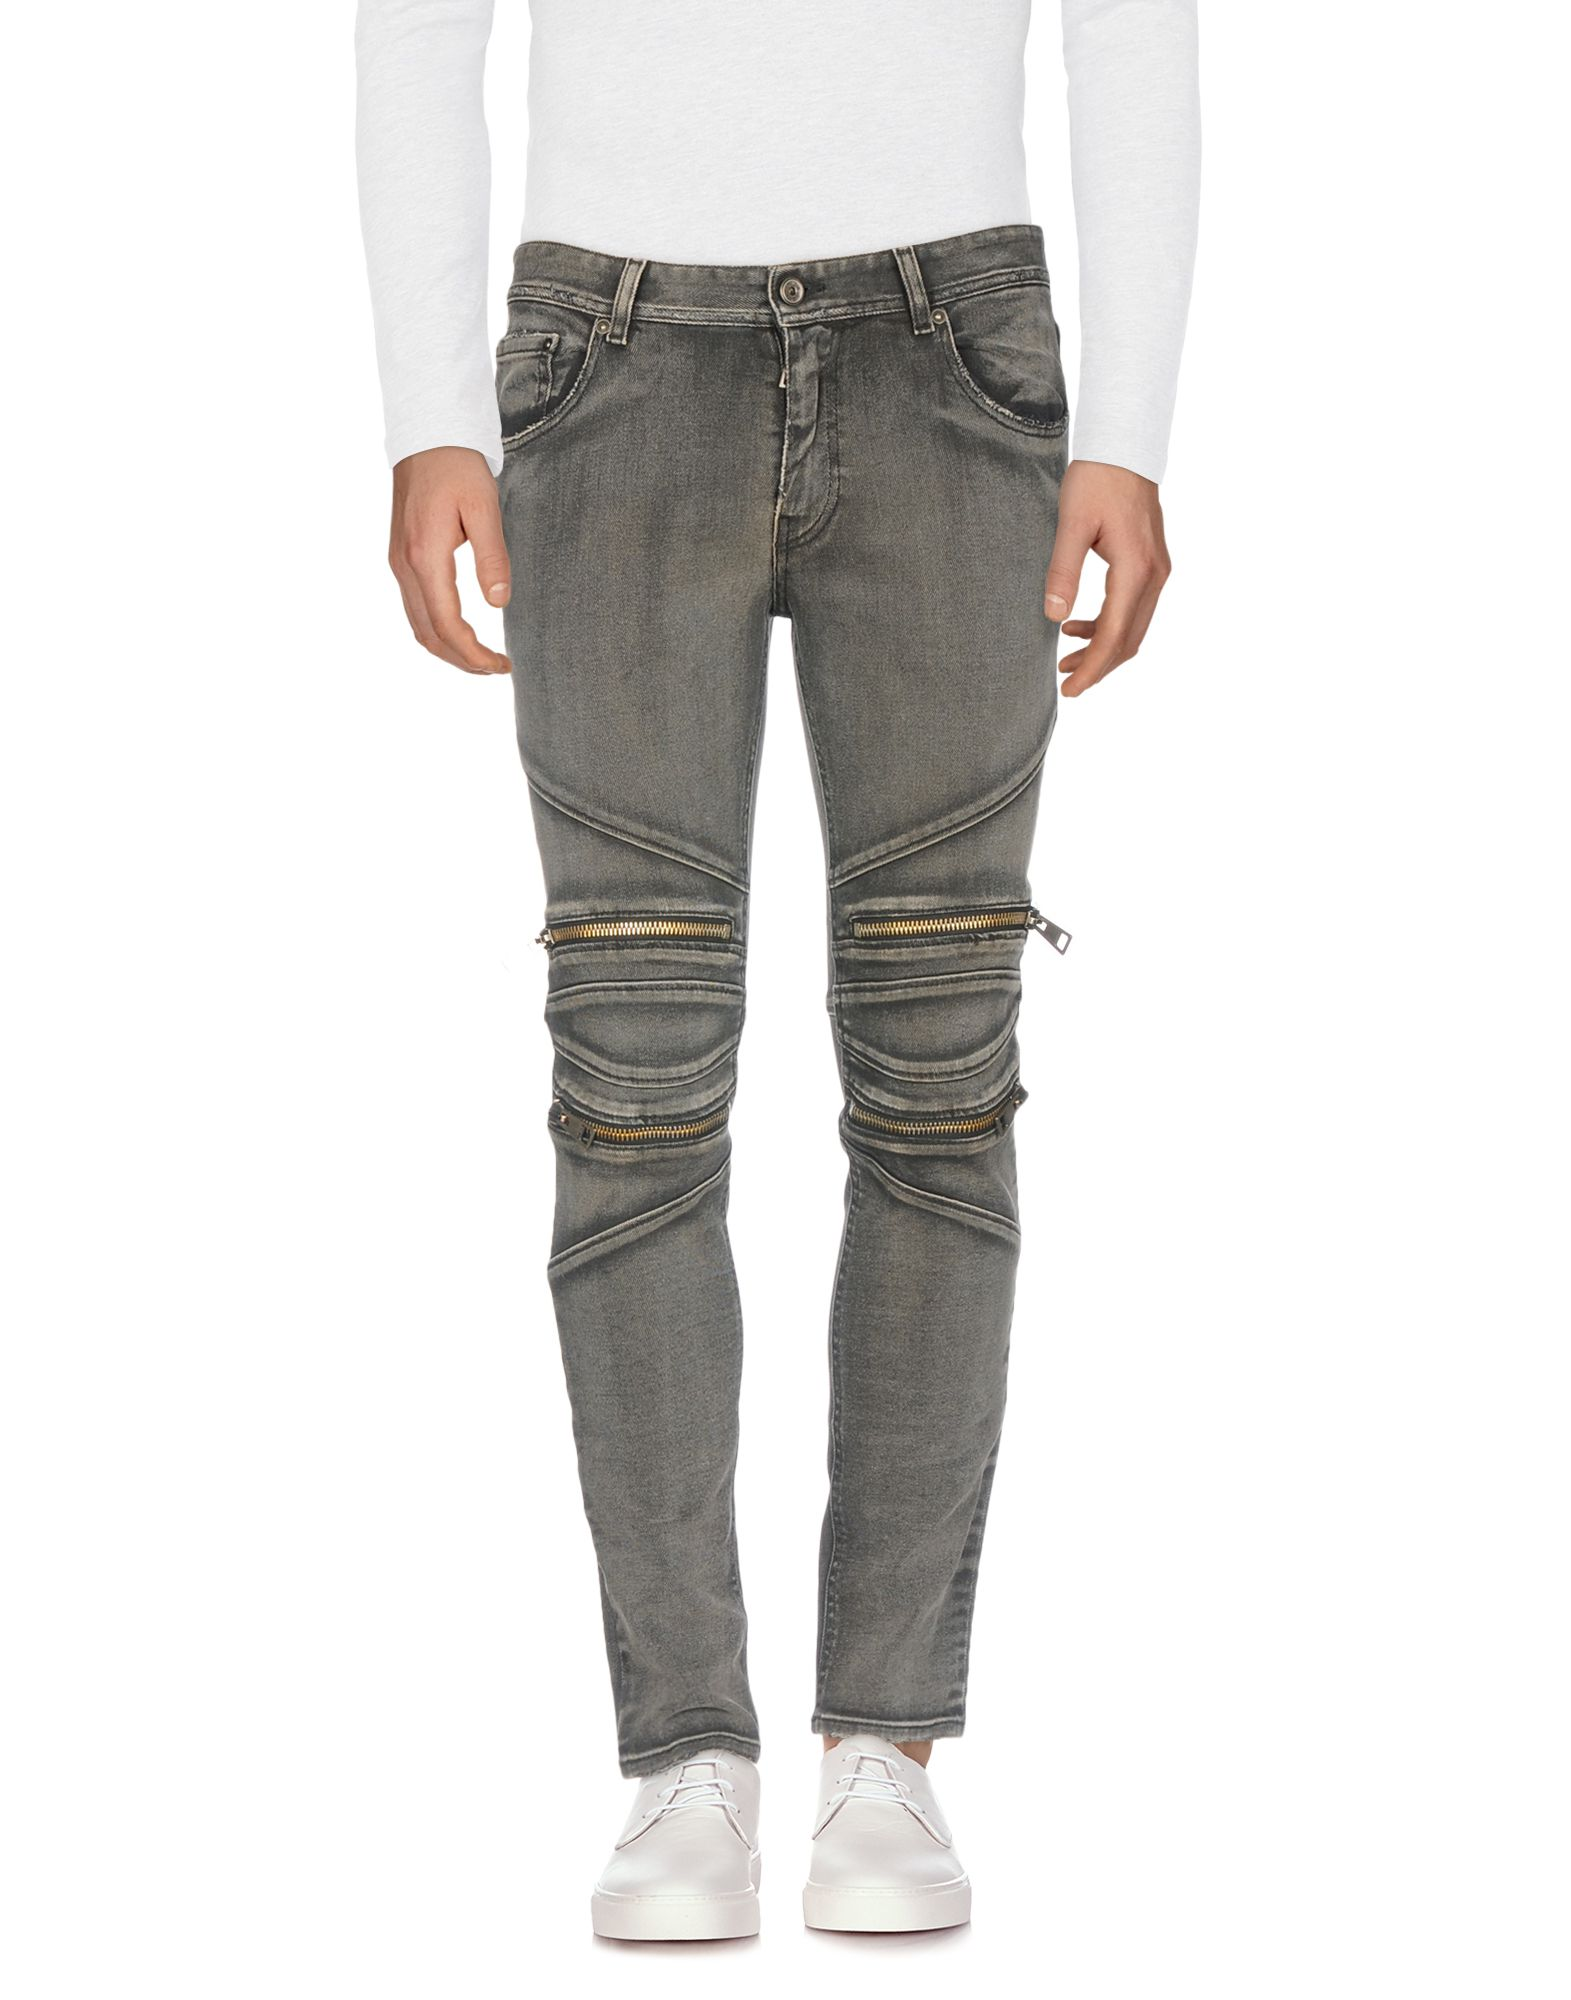 Pantaloni Jeans Just 42670695IT Cavalli Uomo - 42670695IT Just 6a9b62